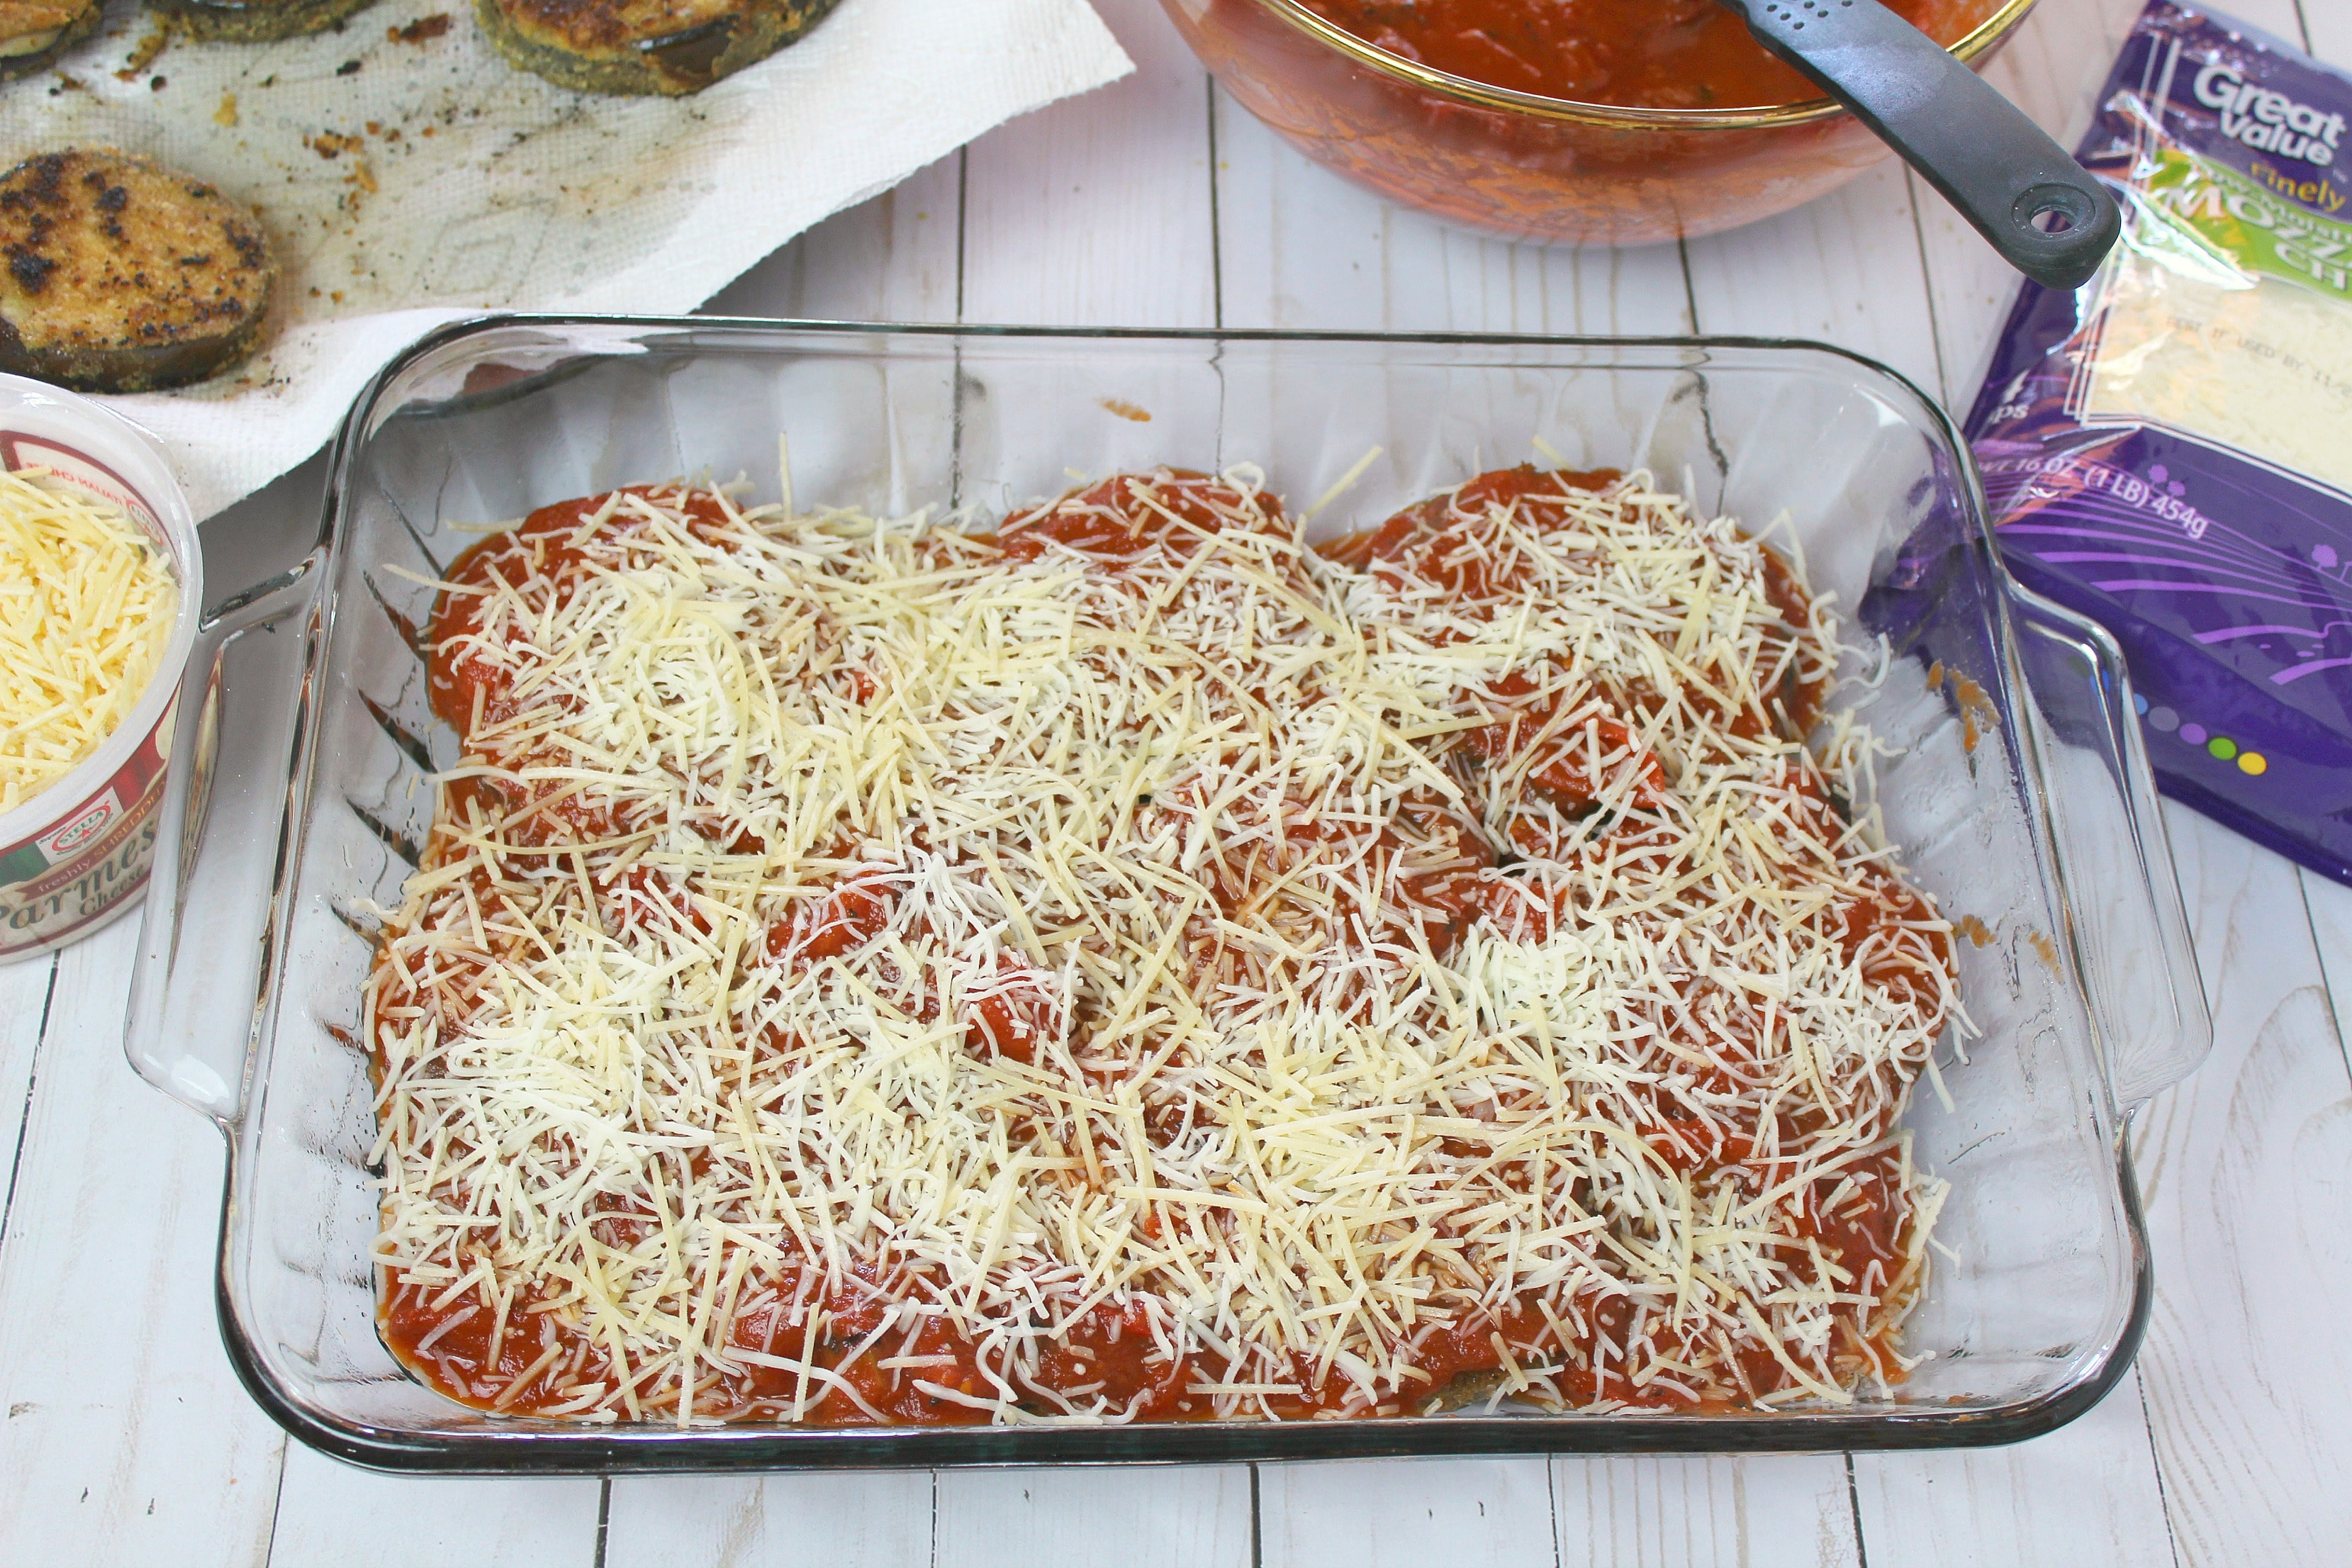 Layer eggplant over with sauce and cheeses in baking dish.